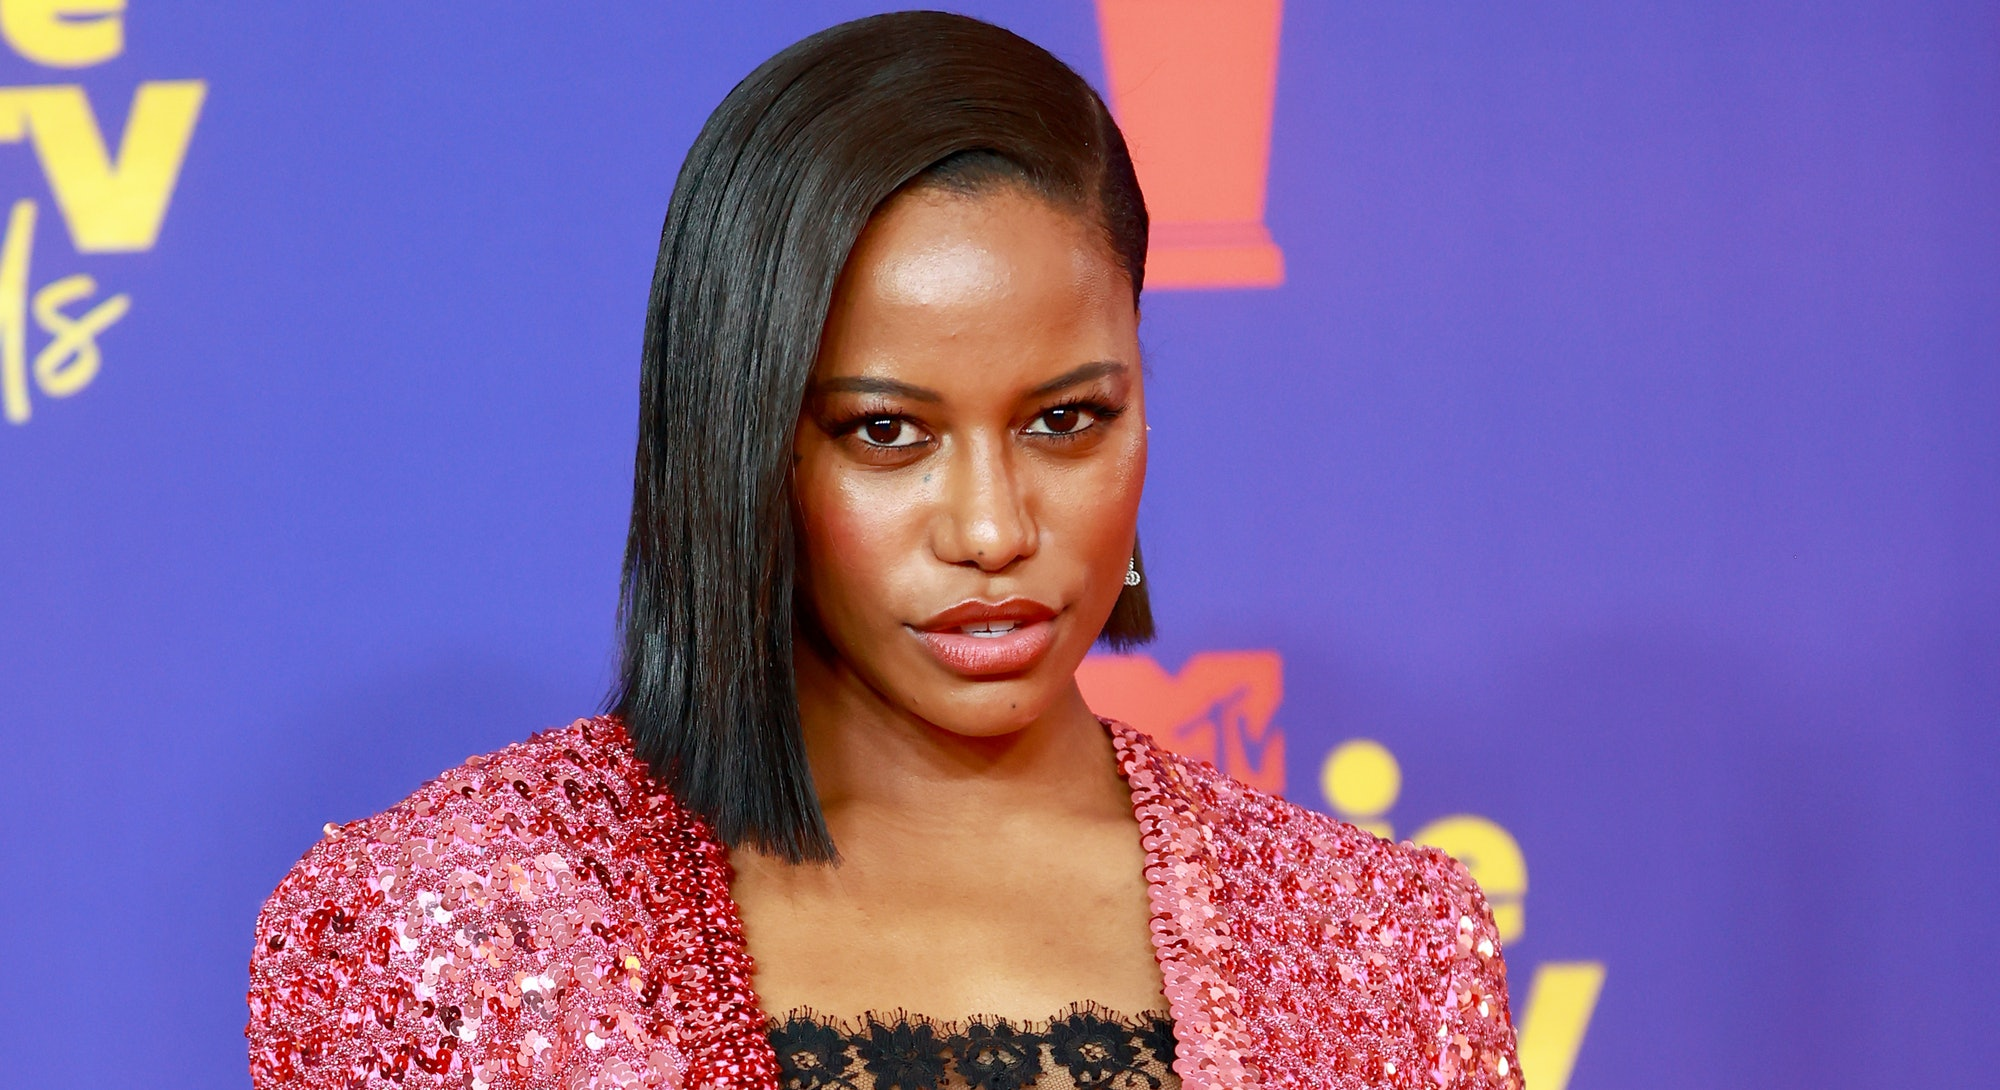 LOS ANGELES, CALIFORNIA - MAY 16: Taylour Paige attends the 2021 MTV Movie & TV Awards at the Hollyw...